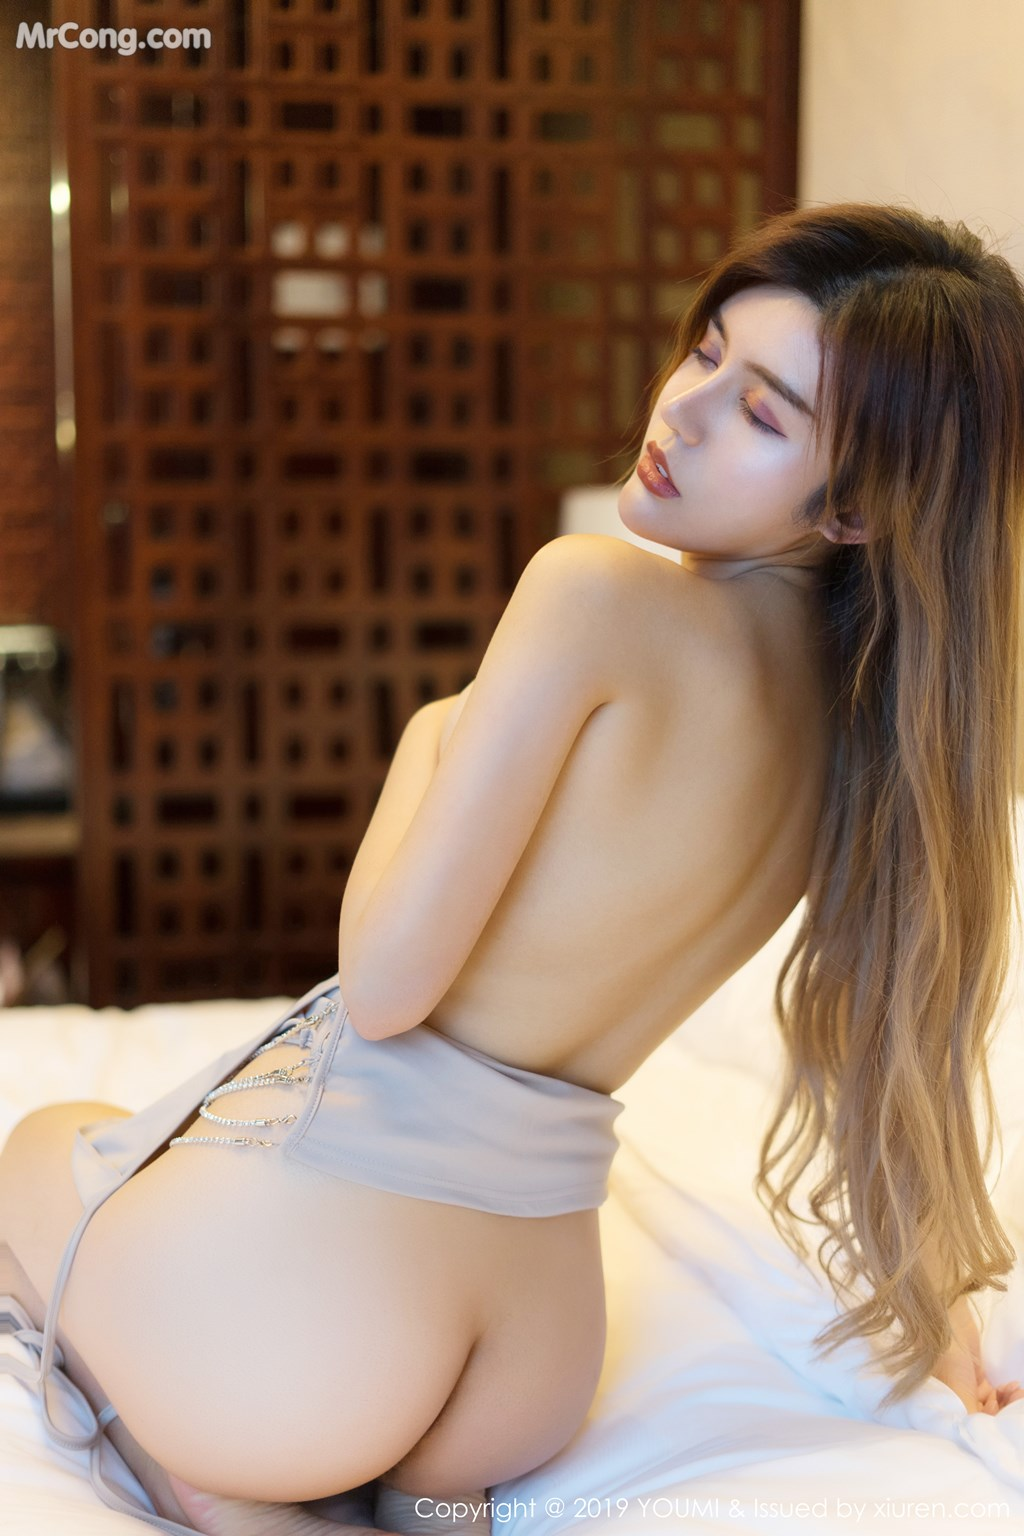 Image YouMi-Vol.283-Cris-MrCong.com-017 in post YouMi Vol.283: Cris_卓娅祺 (49 ảnh)